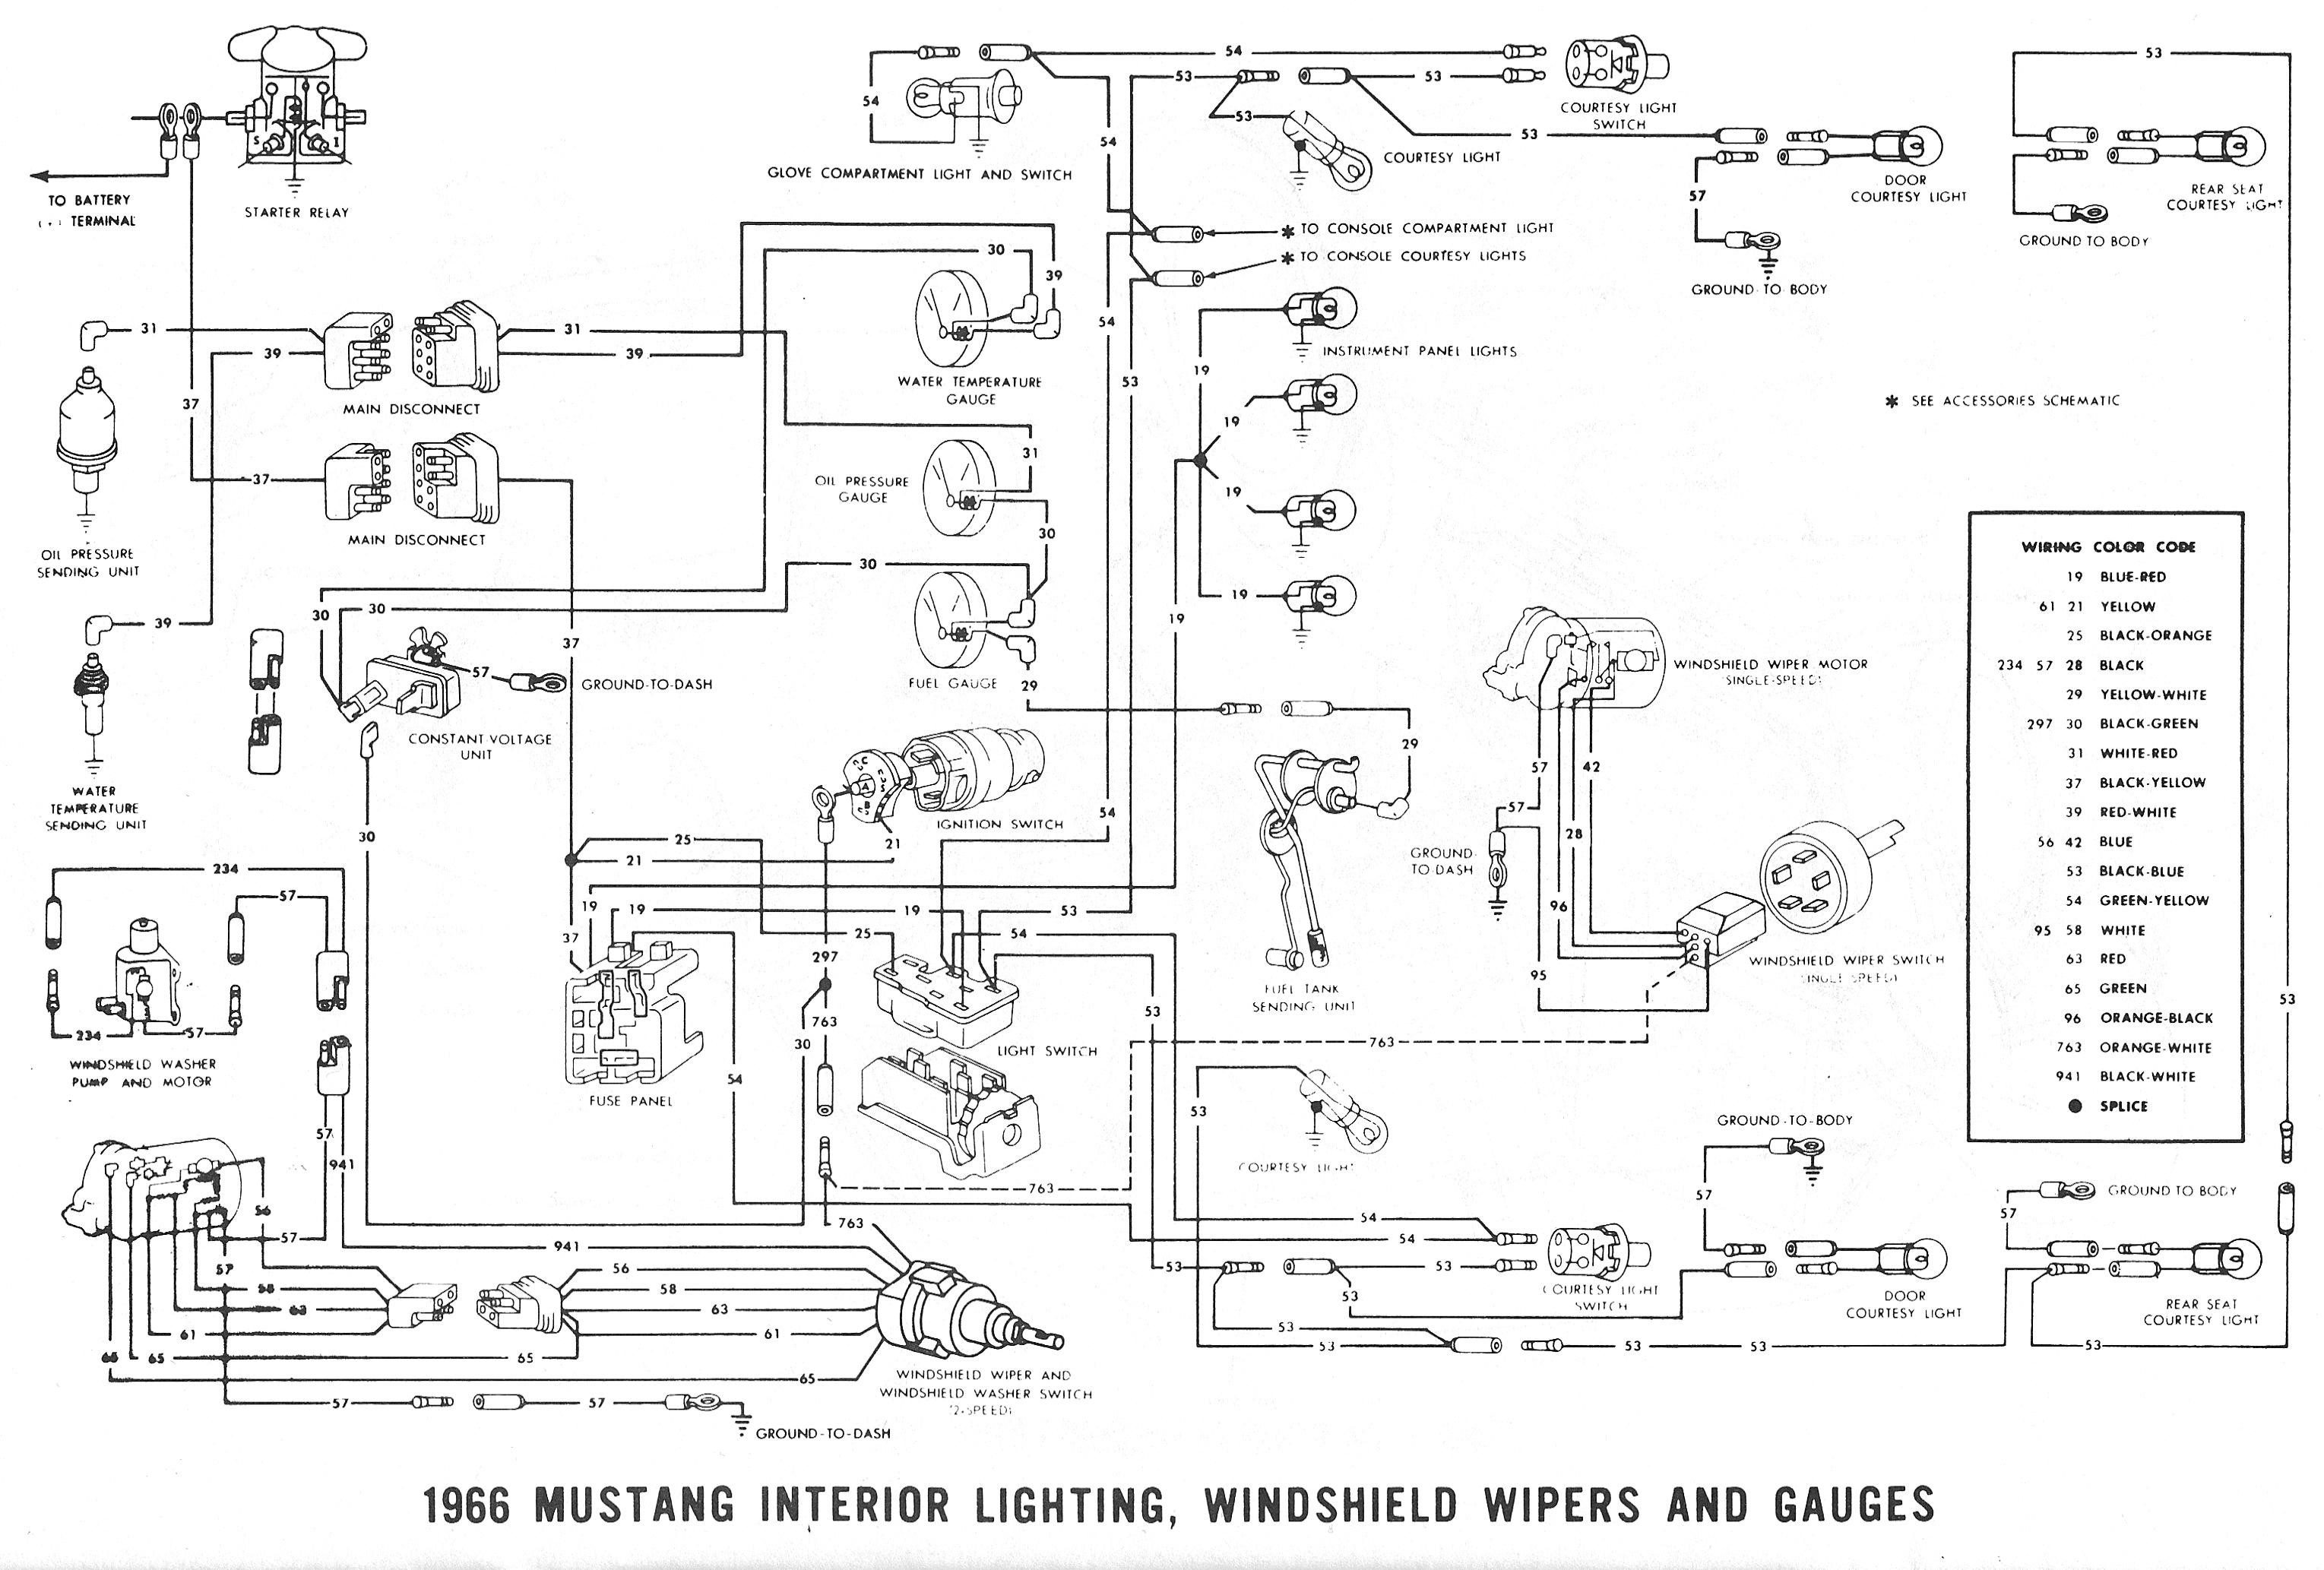 1965 mustang ignition switch wiring diagram Collection-1966 Mustang Ignition Switch Wiring Diagram Awesome Wiring Diagram Tech Rp3 1965 ford Mustang Accessories Fine 3-k